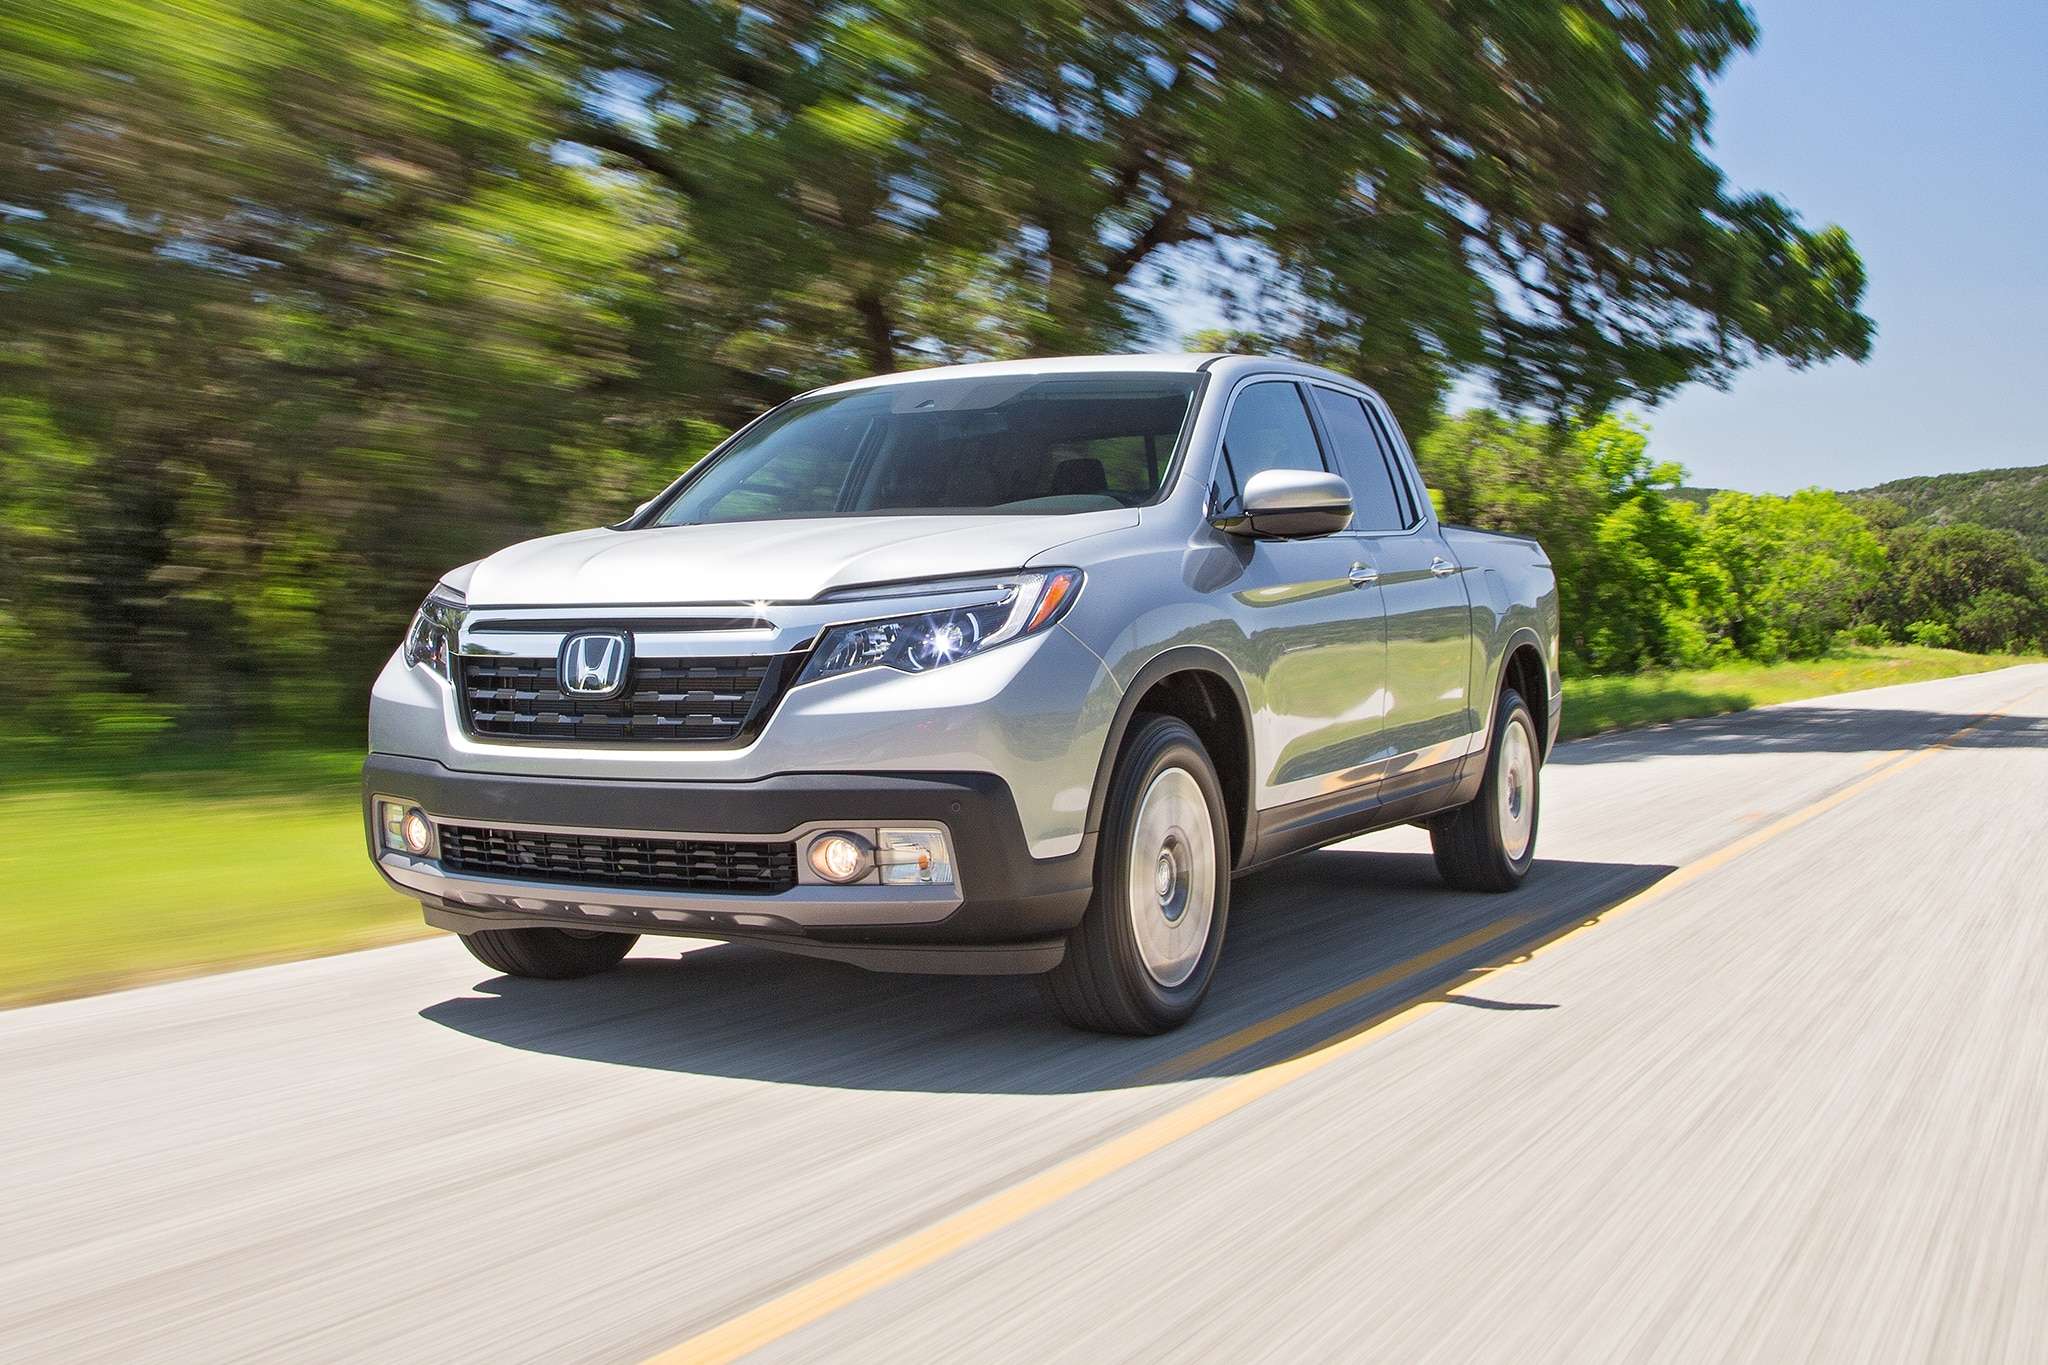 2017 Honda Ridgeline Front Three Quarter In Motion 02